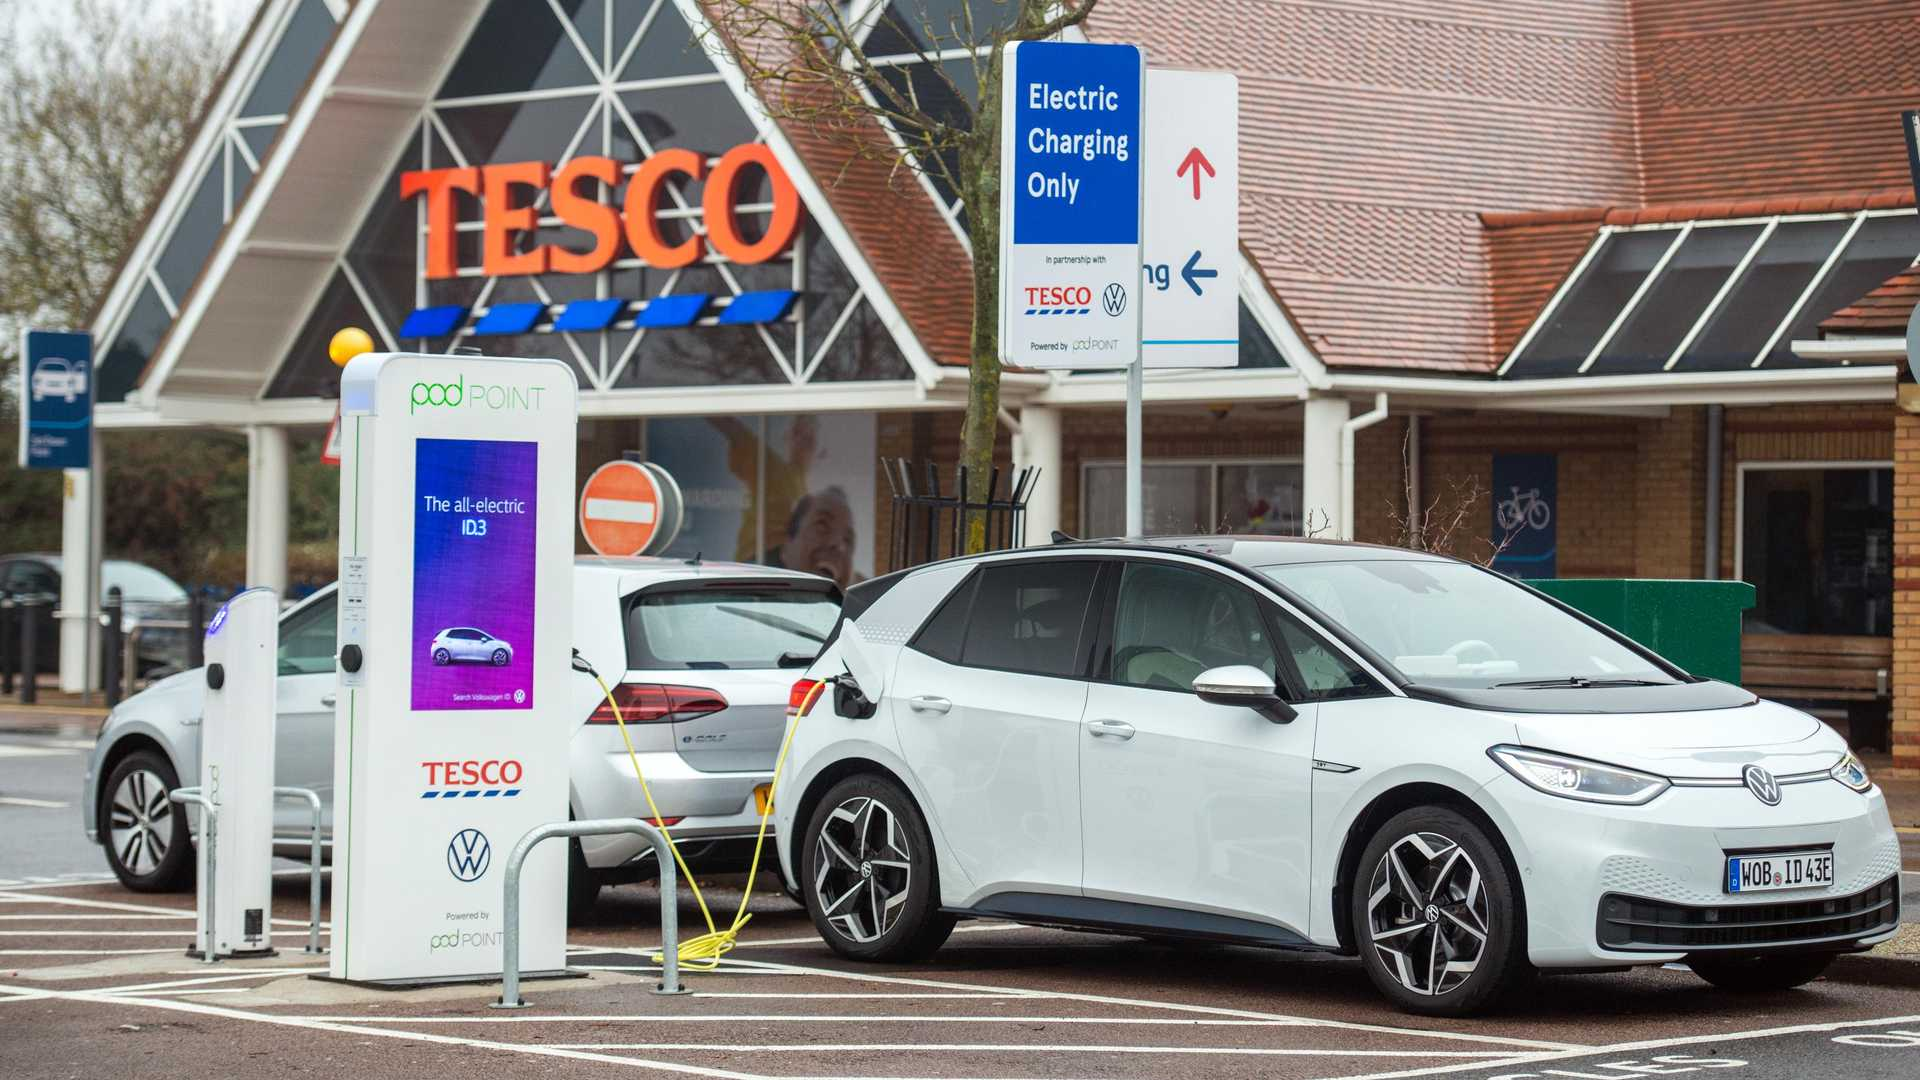 UK's largest free retail charging network already has 200 stations